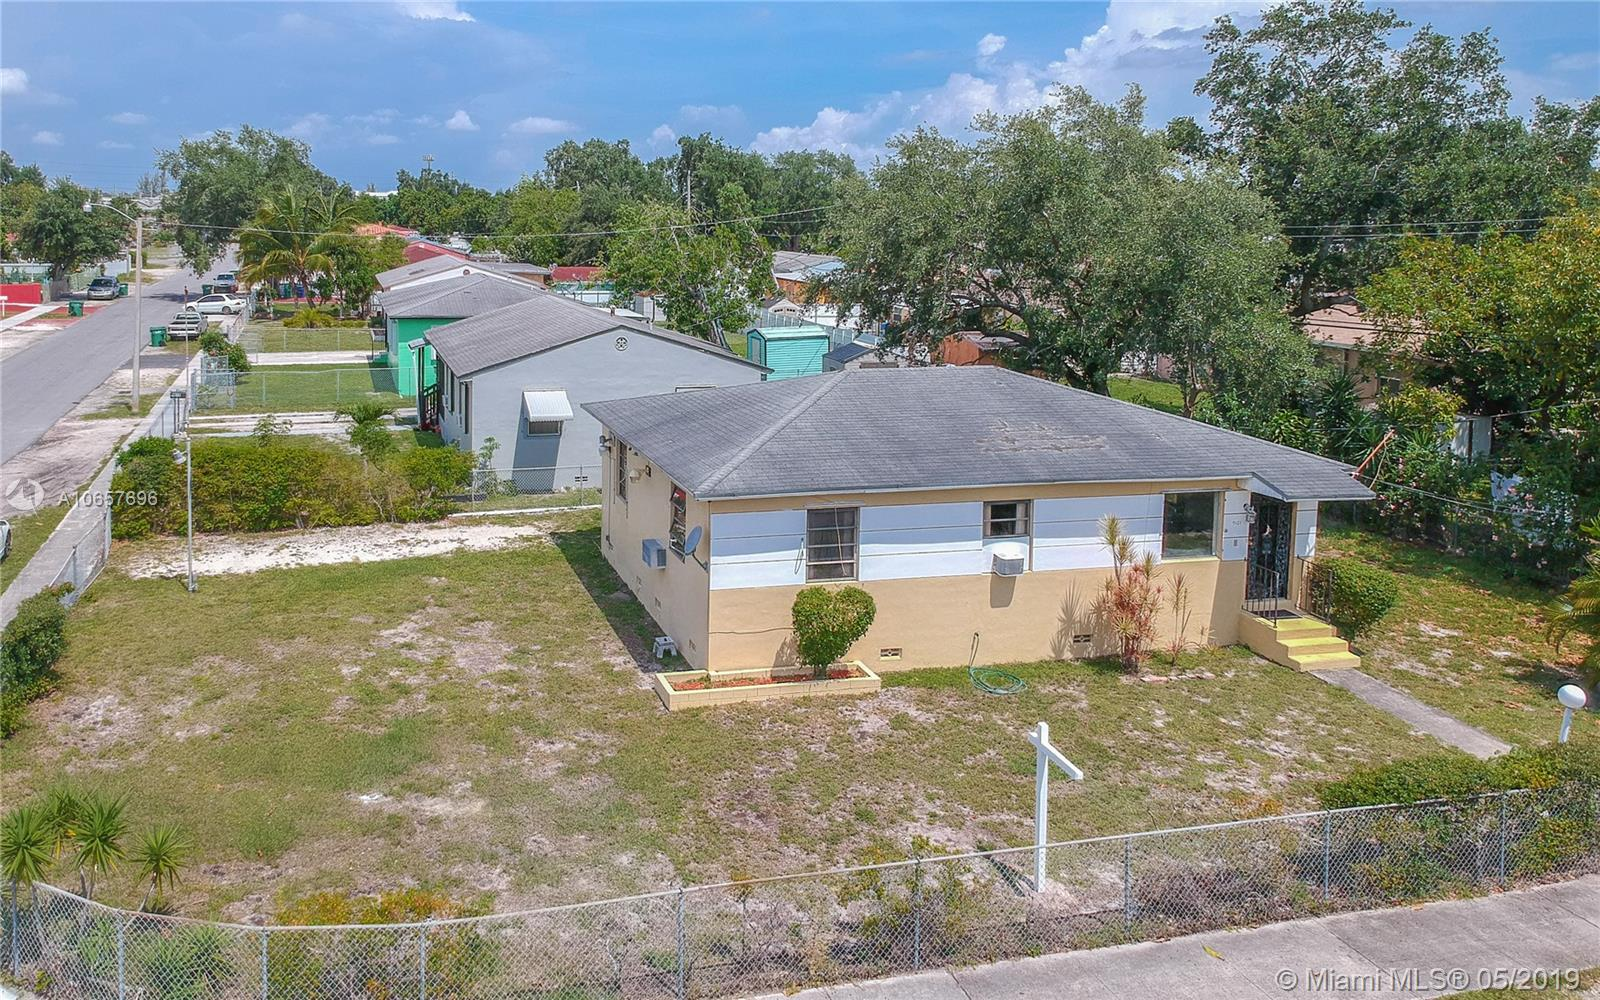 9101 NW 33rd Ave Rd, Miami, FL 33147 - Miami, FL real estate listing